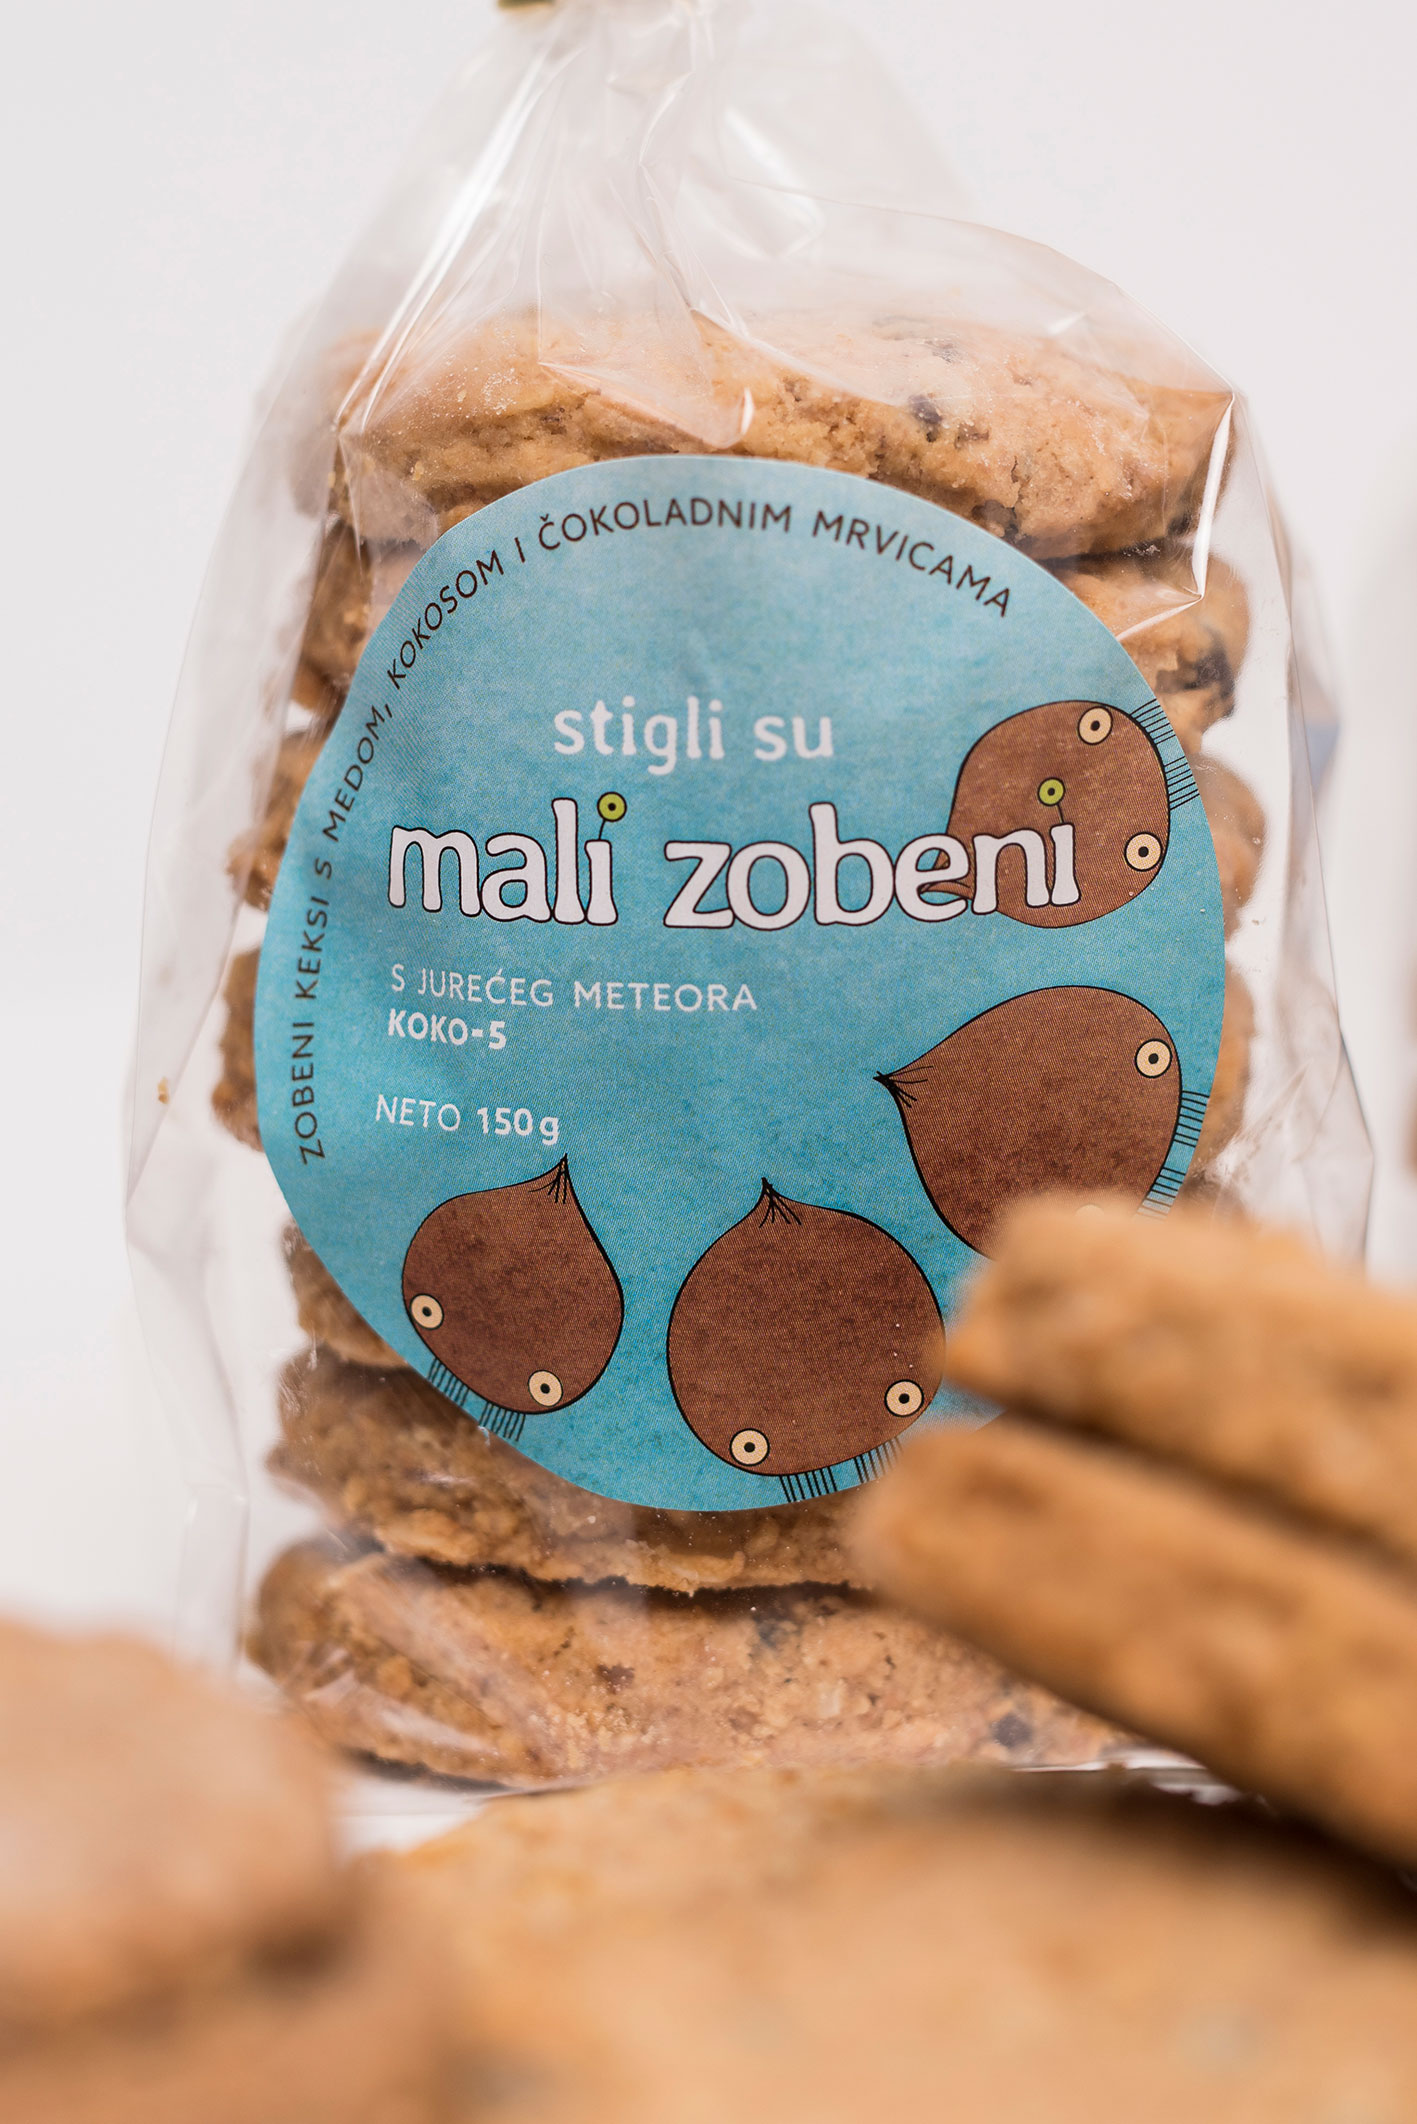 masavukmanovic.com - mali zobeni packaging 03